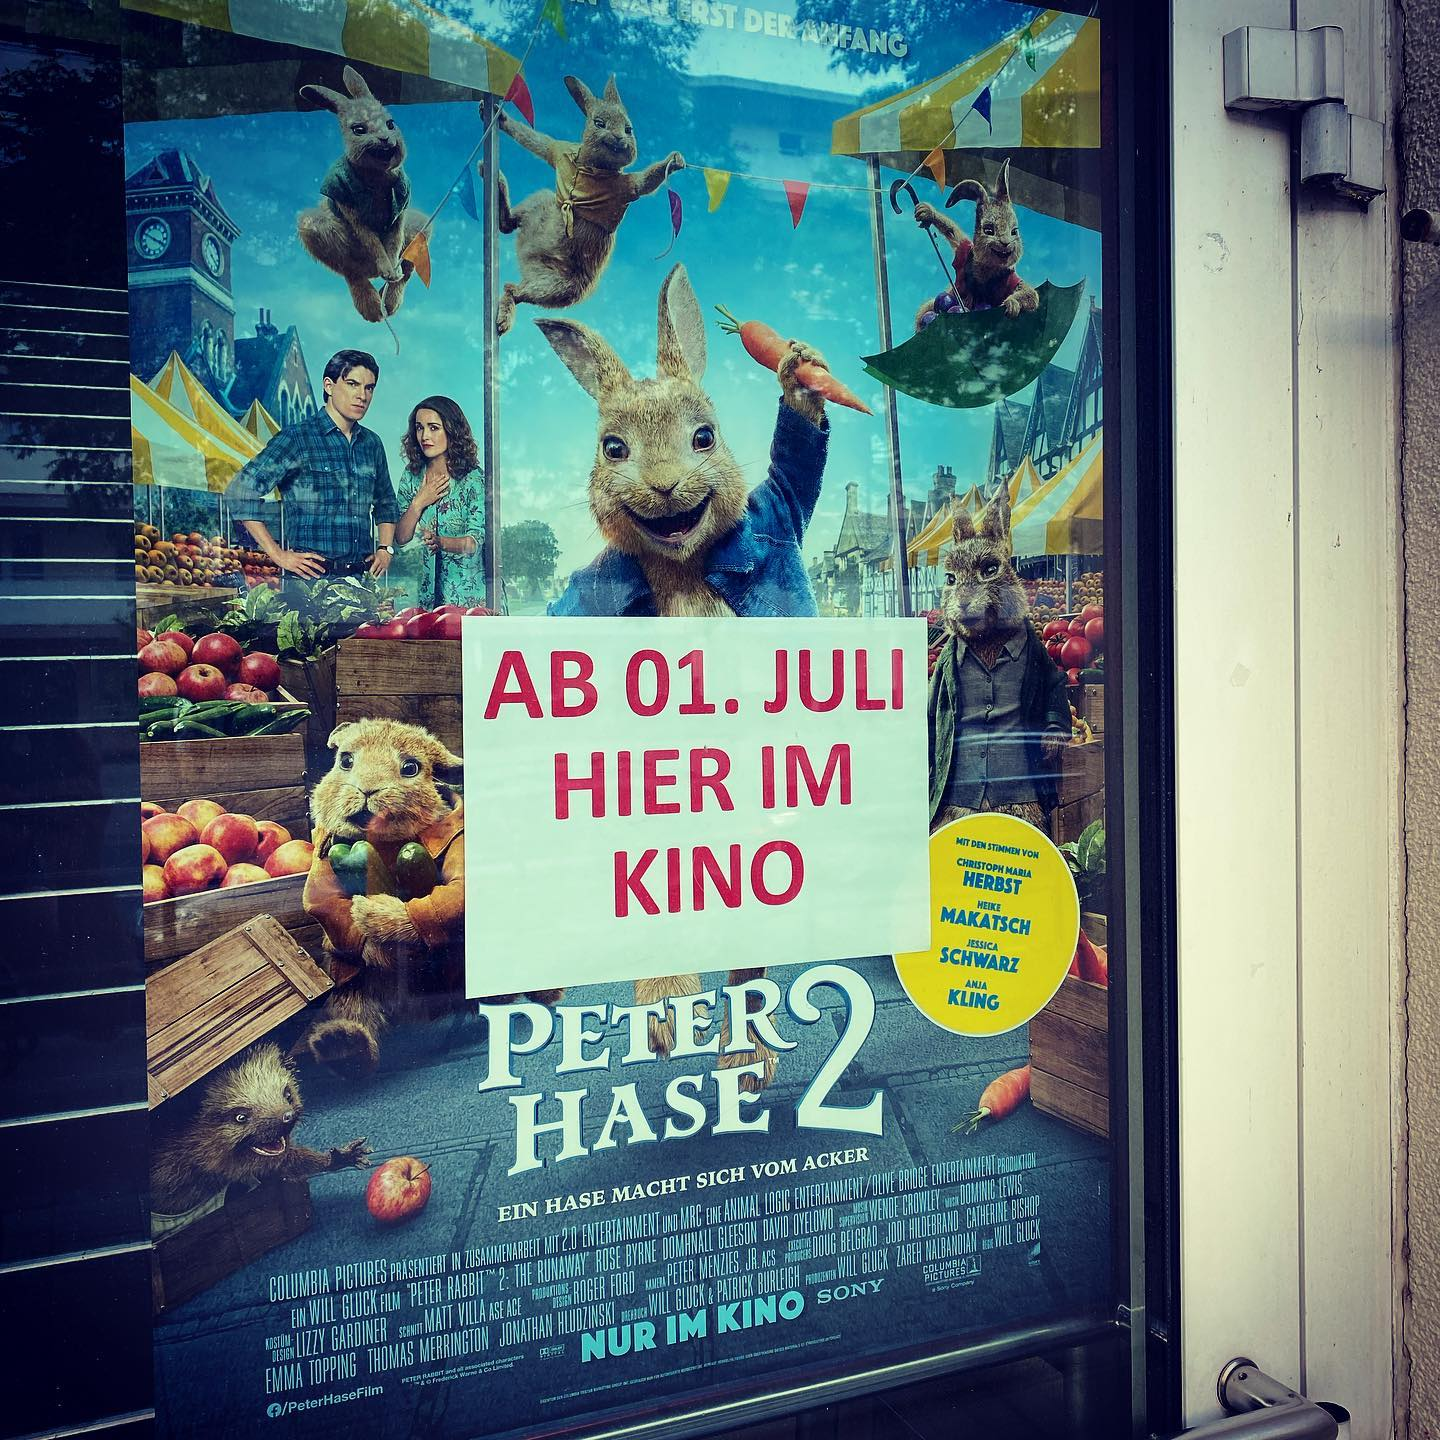 Peter Hase 2